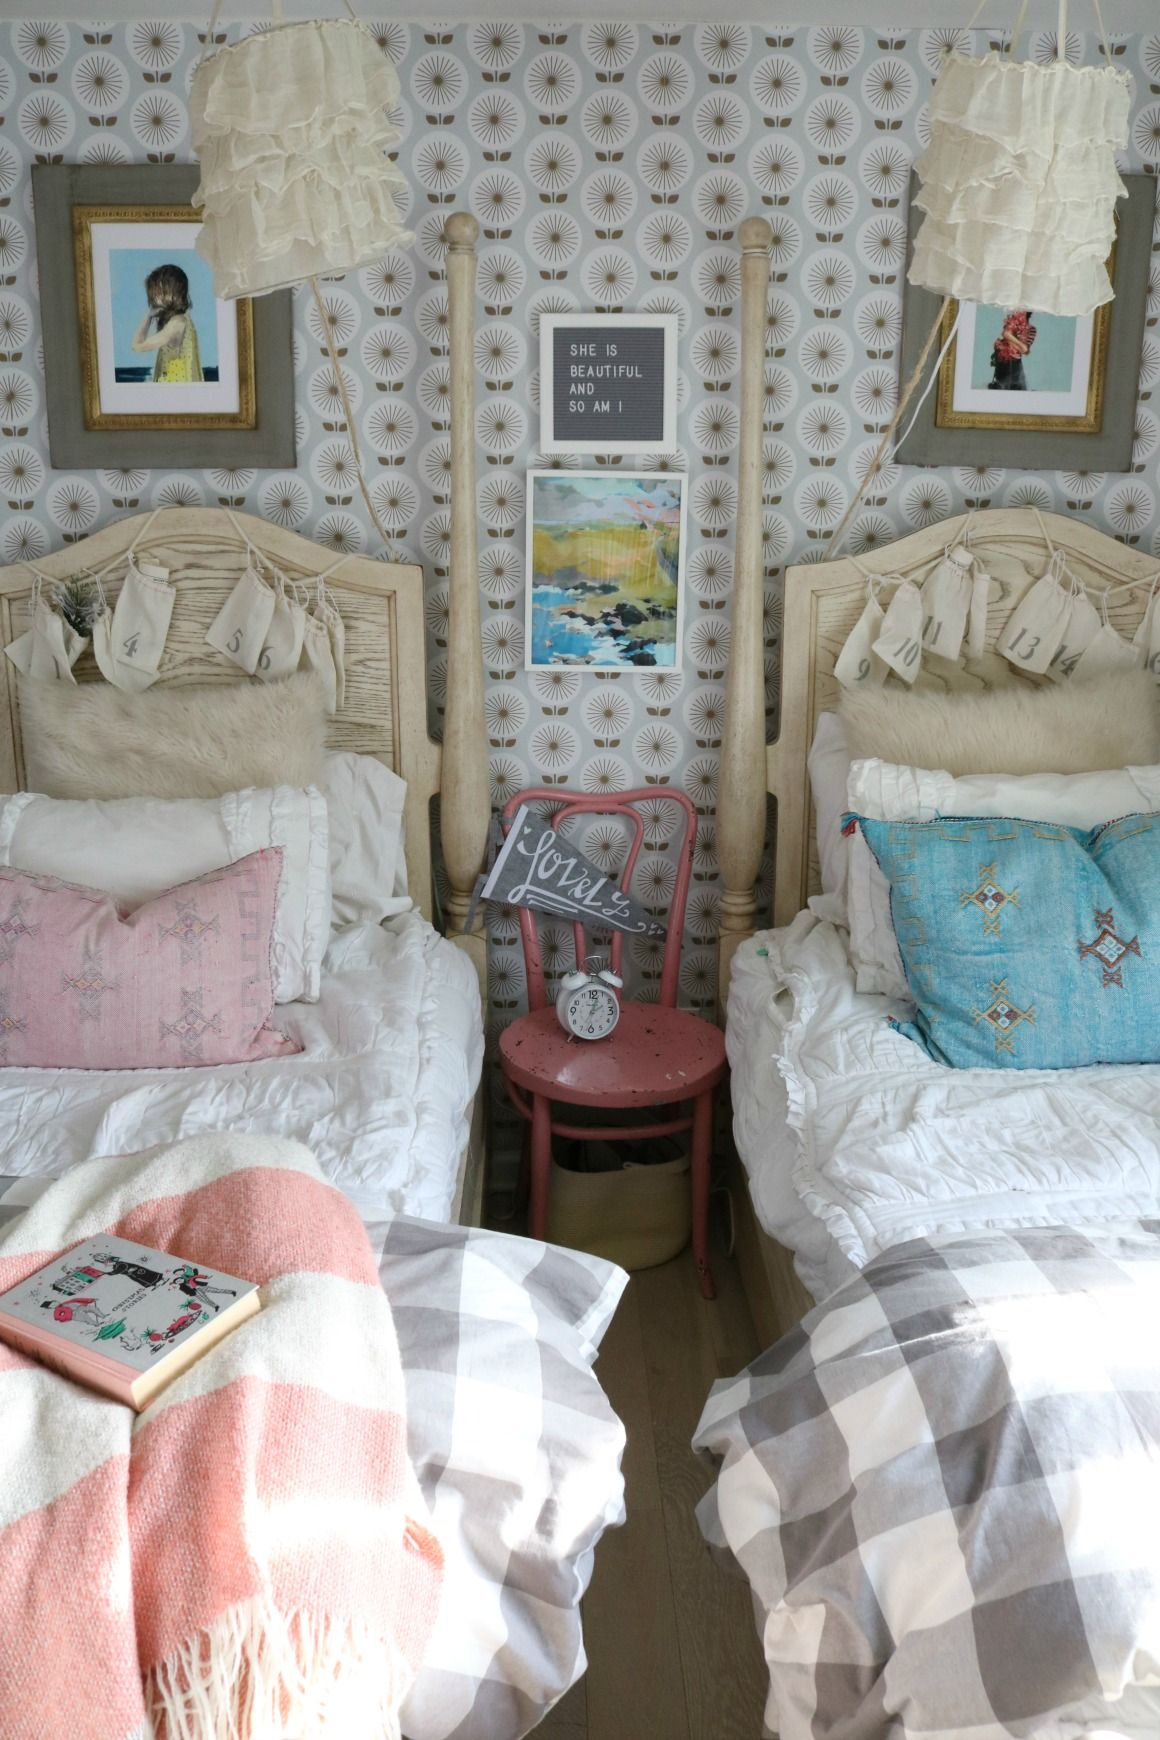 Christmas Ideas in a Small Space- Upstairs Tour | Room, Bedrooms and on teenage boys bedroom ideas, bedroom wall mural ideas, cheap teenage bedroom ideas, diy teen bedroom ideas, teenage girl bedroom ideas, modern teens bedroom design ideas, small tween girls bedroom sharing, small bedroom design ideas, bedroom makeover ideas, bedroom desk ideas, teenage room decorating ideas, small teenage bedroom designs, bedroom headboard feature wall ideas, teen bedroom decor ideas, small teenage girl bedroom, blue and gray teen bedroom ideas, storage for small bedrooms ideas, small boys bedroom ideas, small bedrooms for teens, horse themed bedroom ideas,